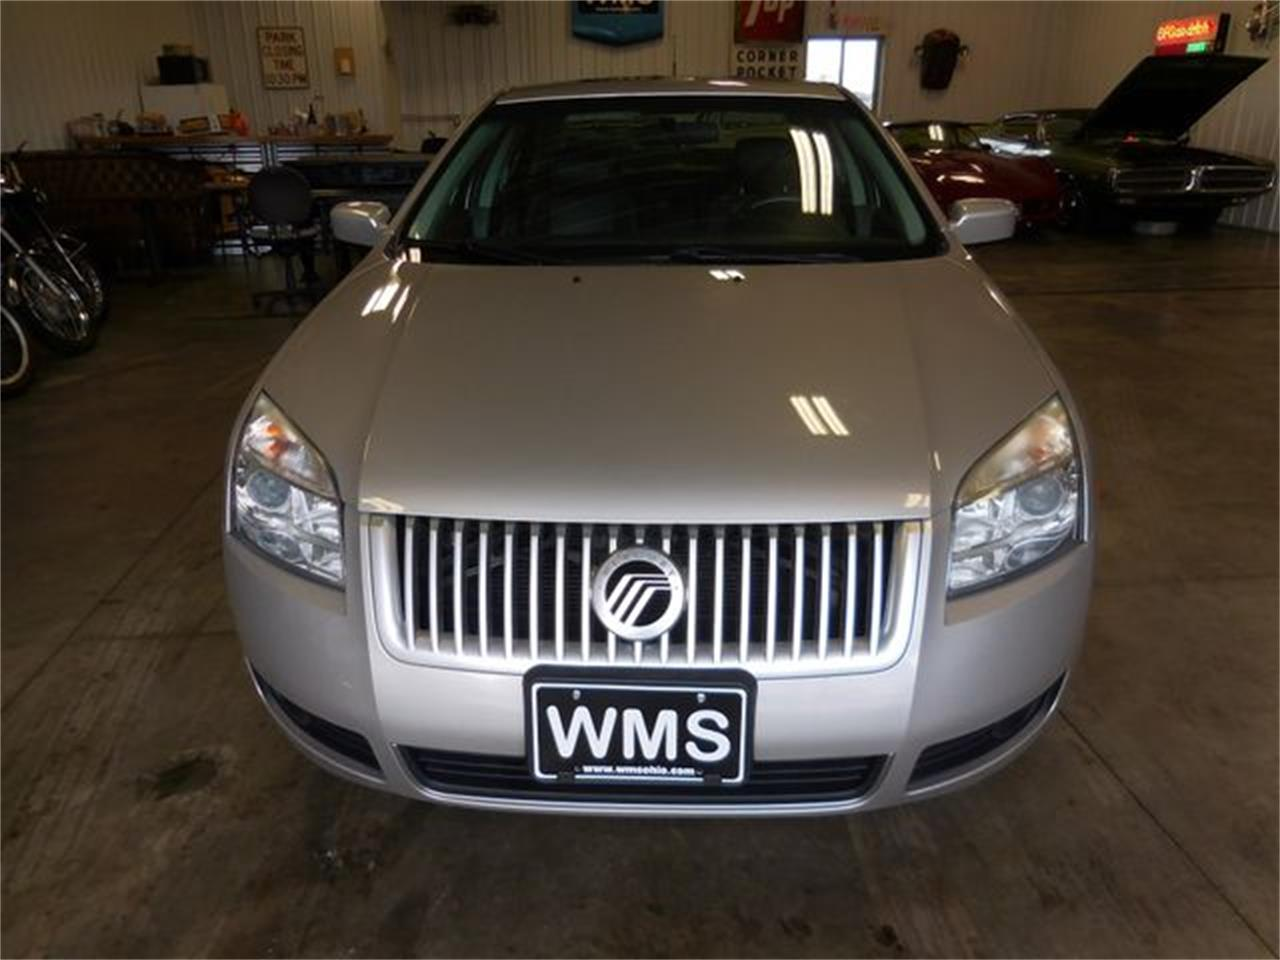 Large Picture of '07 Mercury Milan - $5,900.00 - MG1T